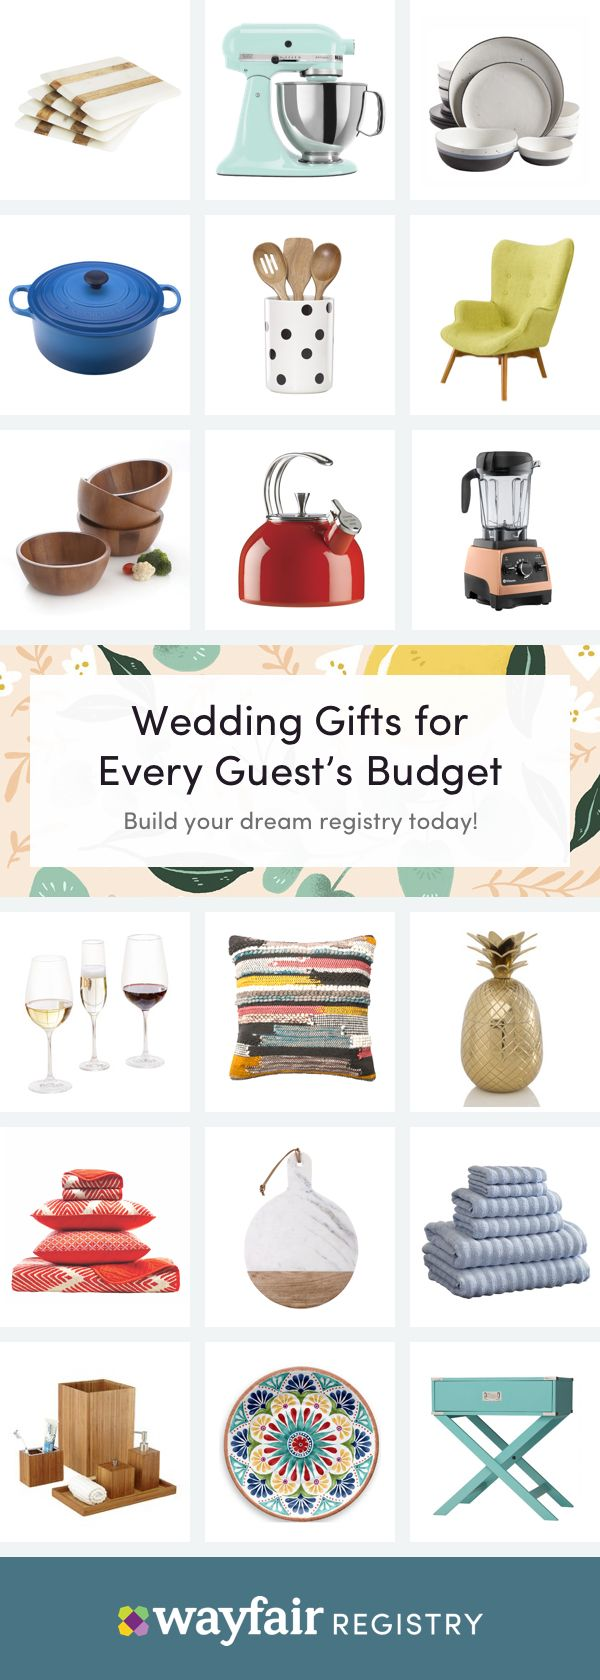 Register With Wayfair Registry To Build Your Happily Ever After From Bedroom Furniture To Kitchen Must H Wayfair Registry Dream Wedding Registry Wedding Gifts